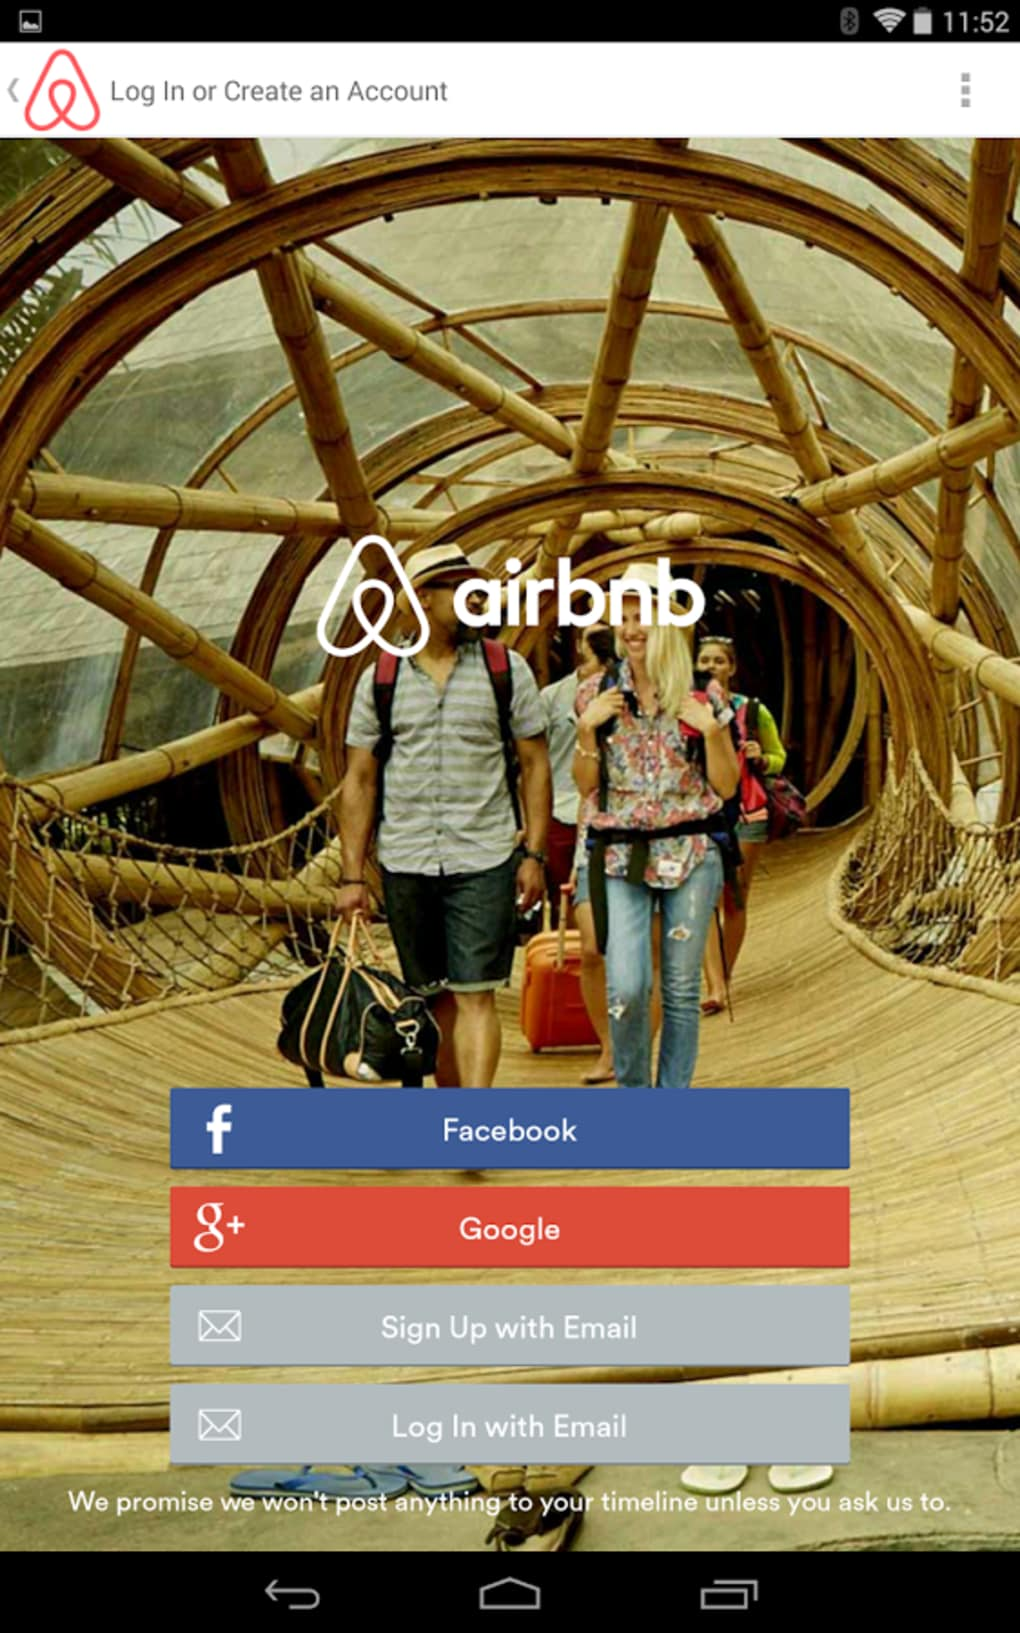 Airbnb for Android - Download